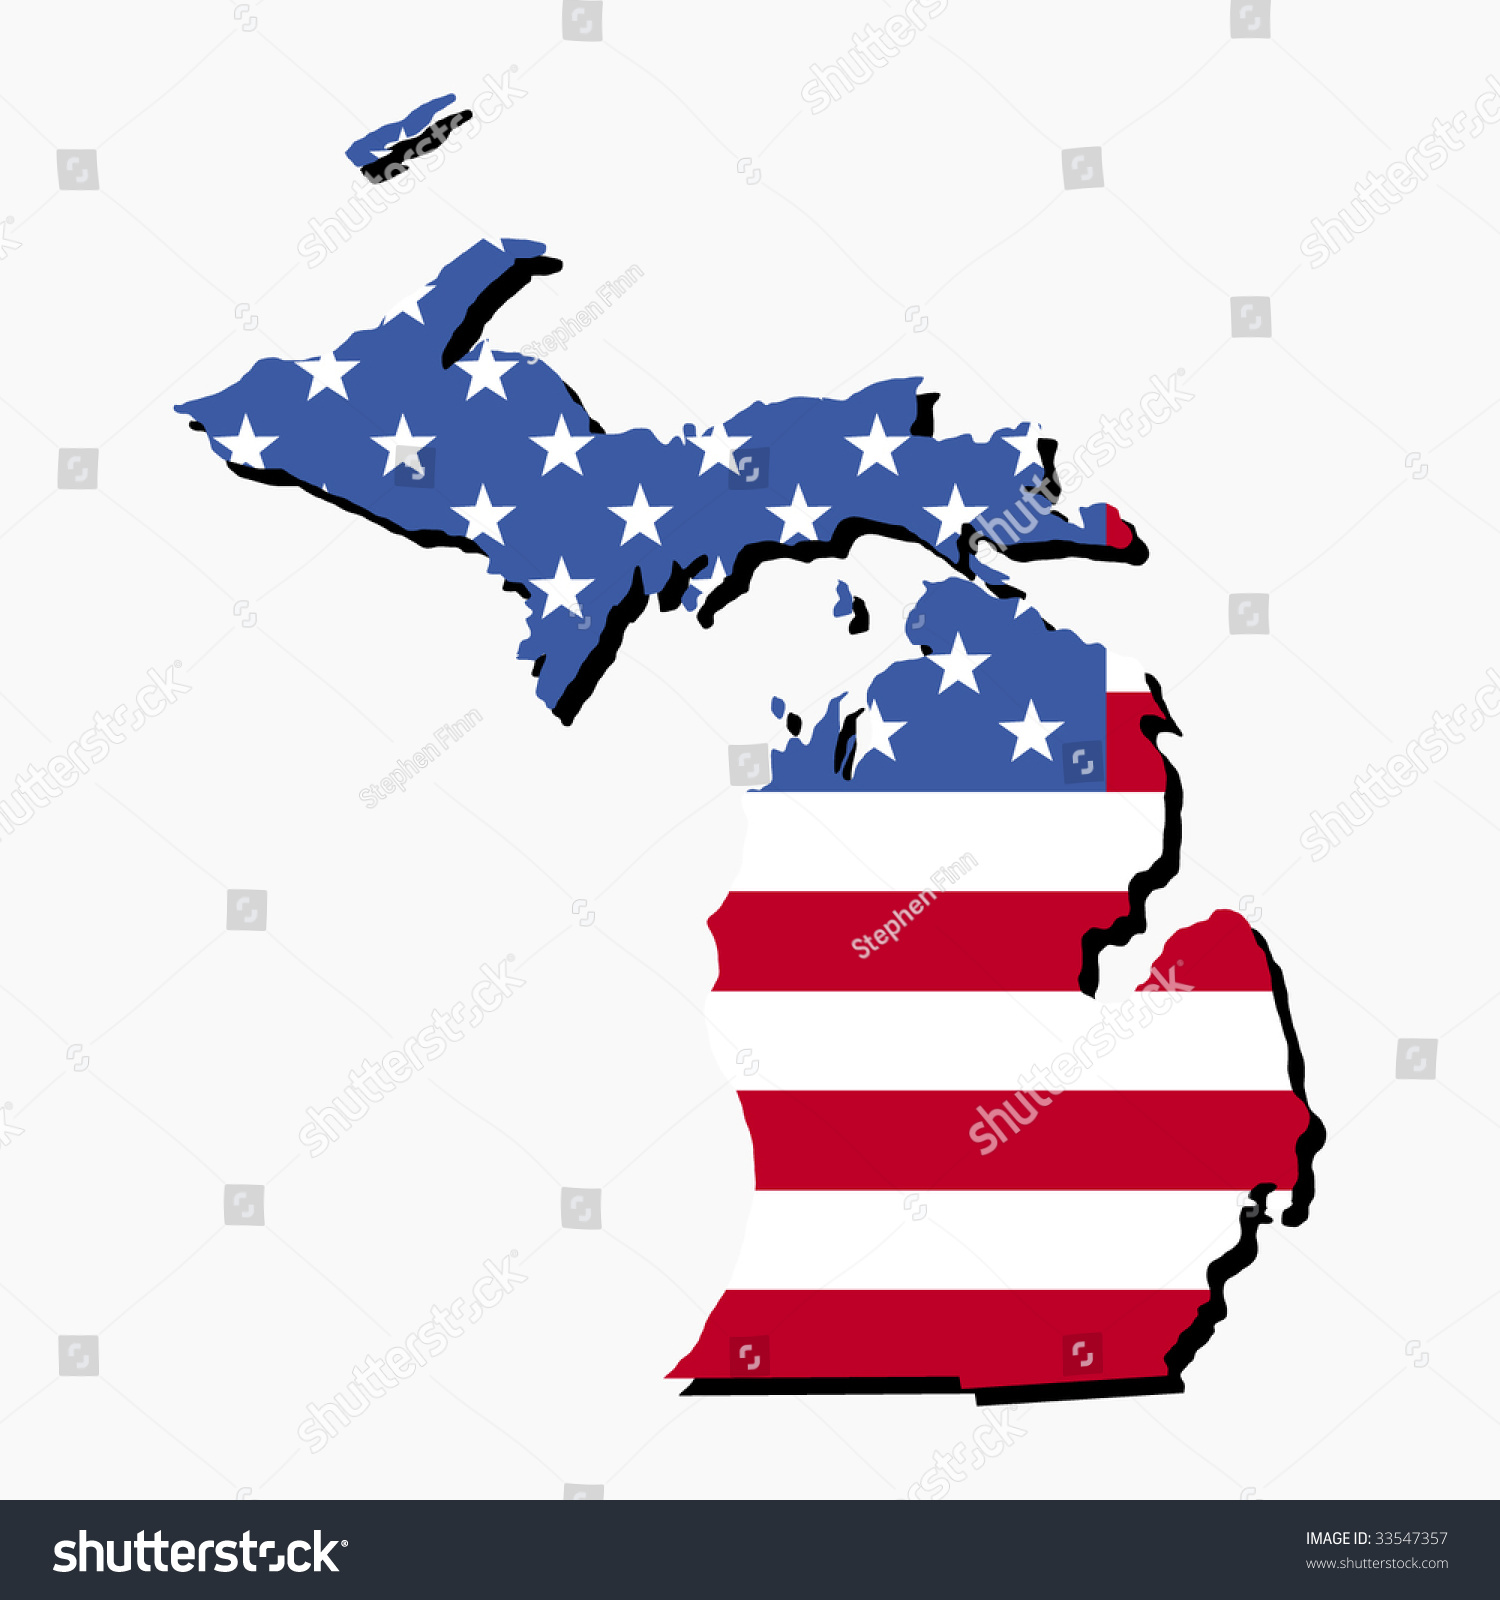 Map State Michigan American Flag Illustration Stock Vector - Michigan state usa map